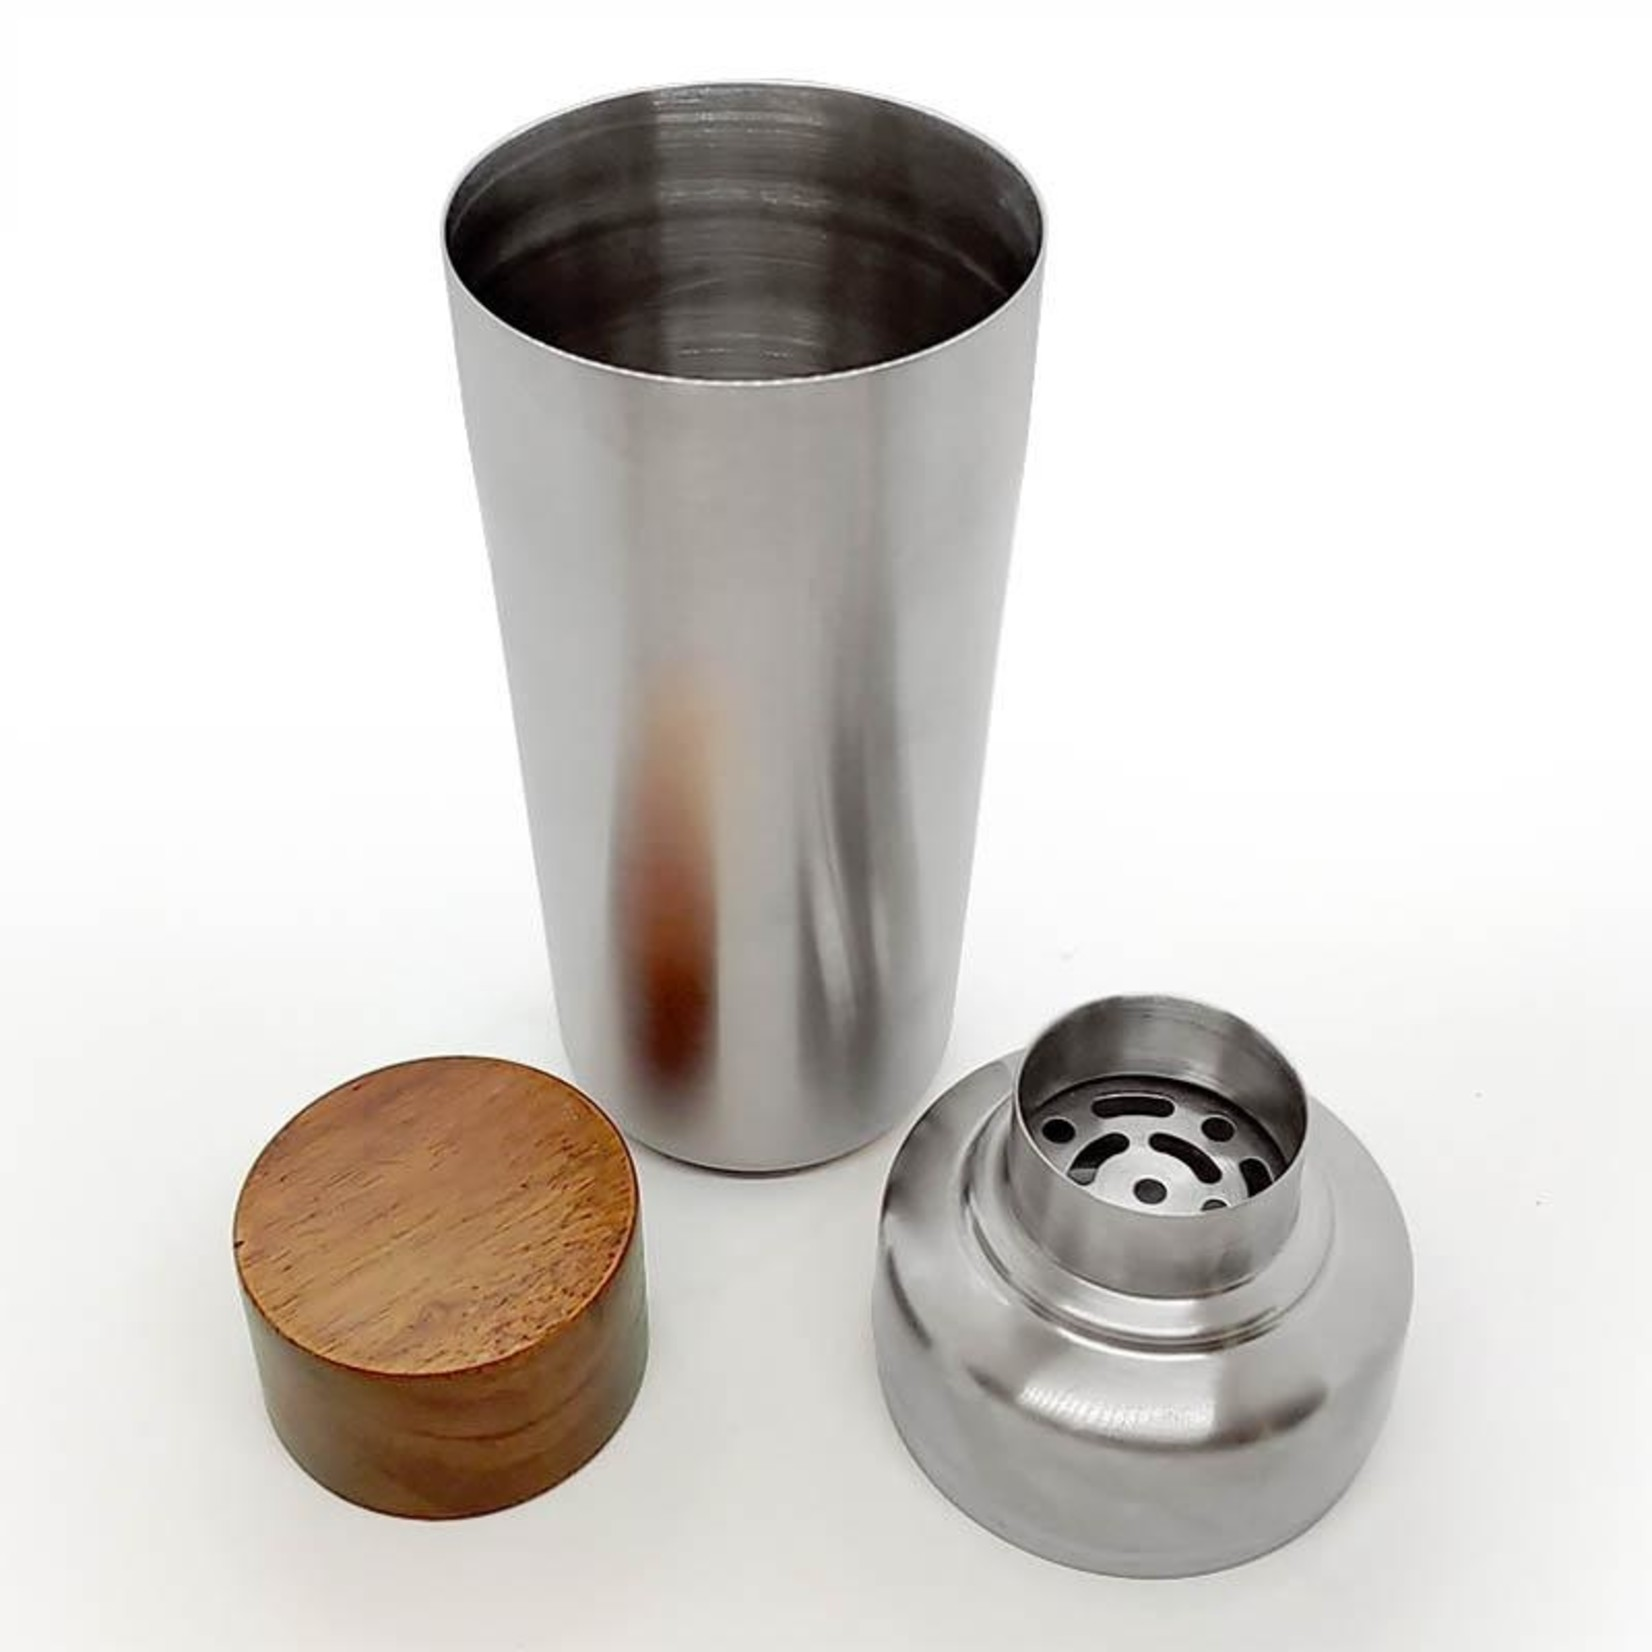 Cocktail Shaker with Wood Cap